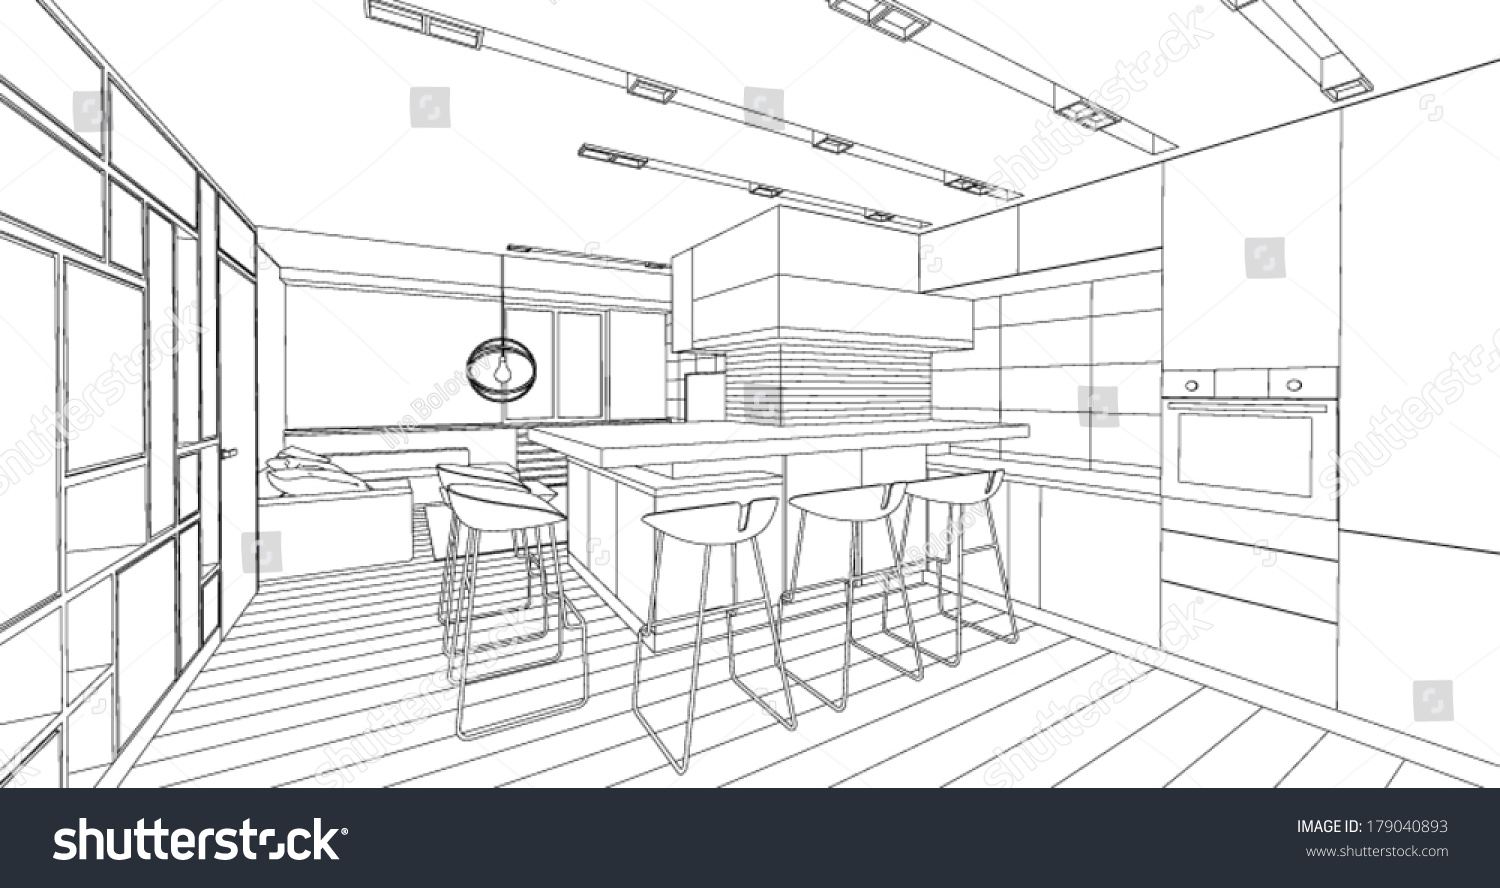 Royalty free interior vector drawing architectural for Interior design living room drawing